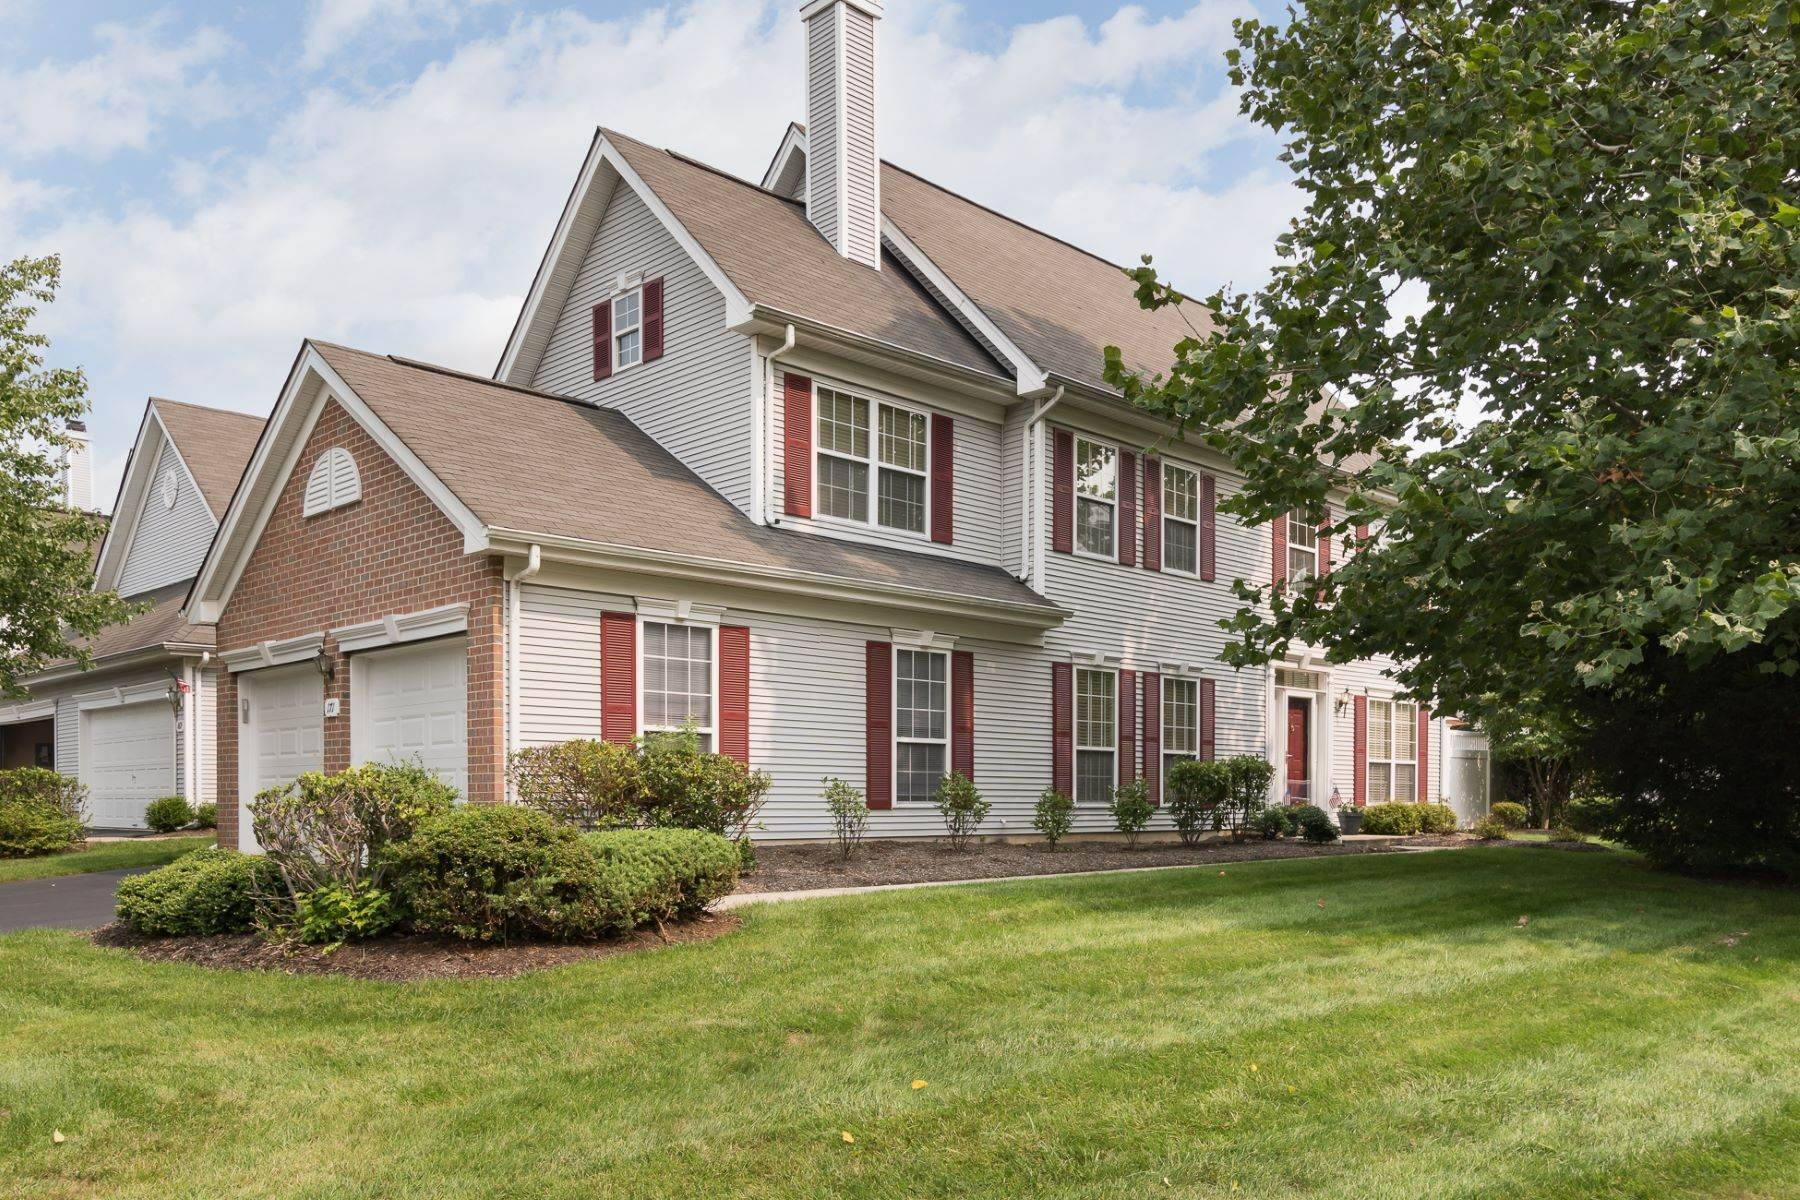 townhouses vid Stylish End-Unit In Convenient Twin Pines 171 Coburn Road, Pennington, New Jersey 08534 Förenta staterna